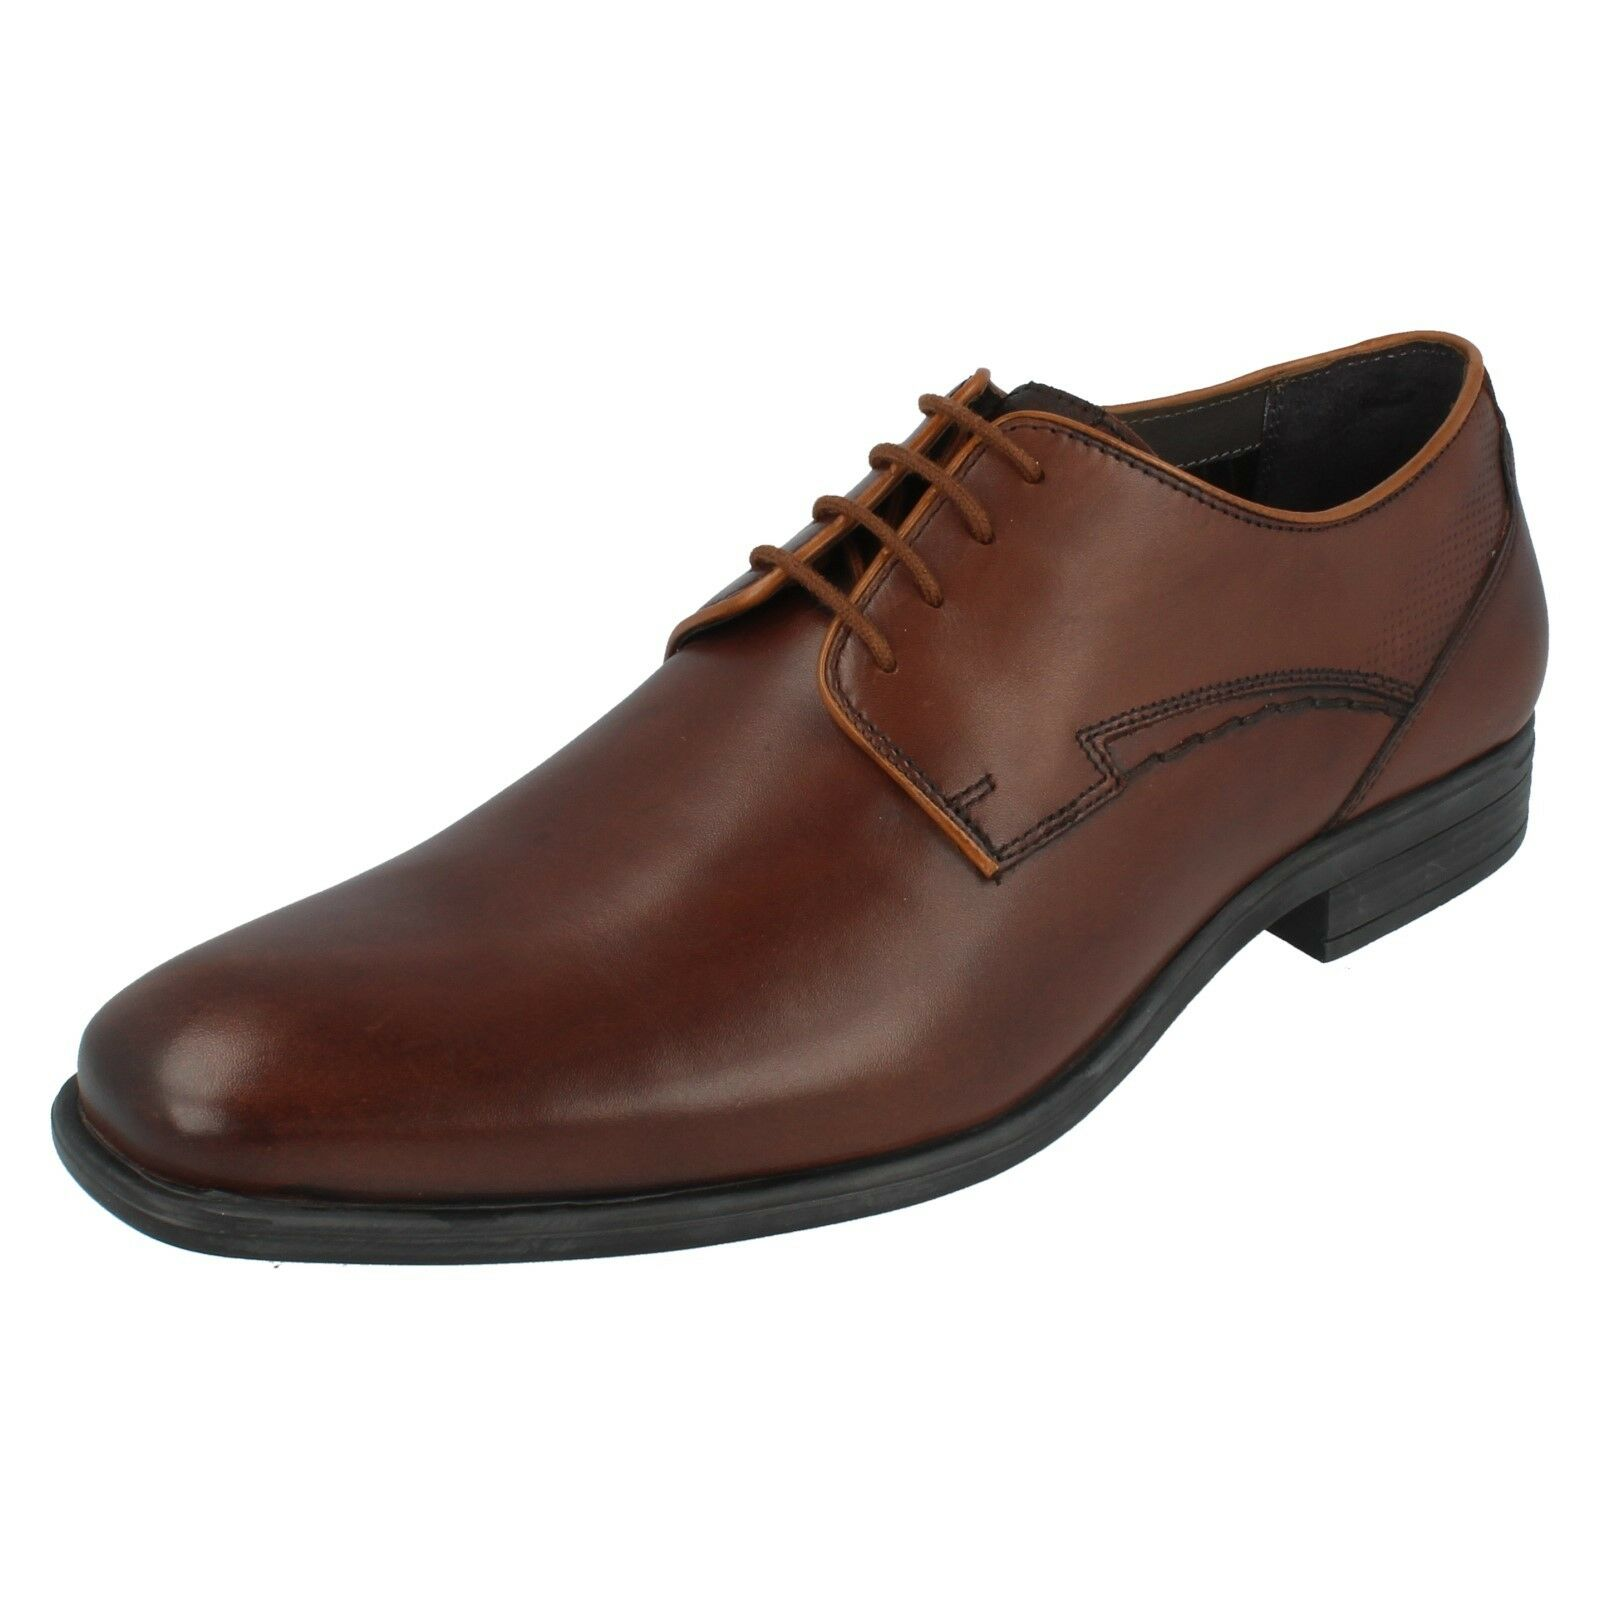 Mens KANE MADDOW Brown Leather Lace Up shoes By Hush Puppies